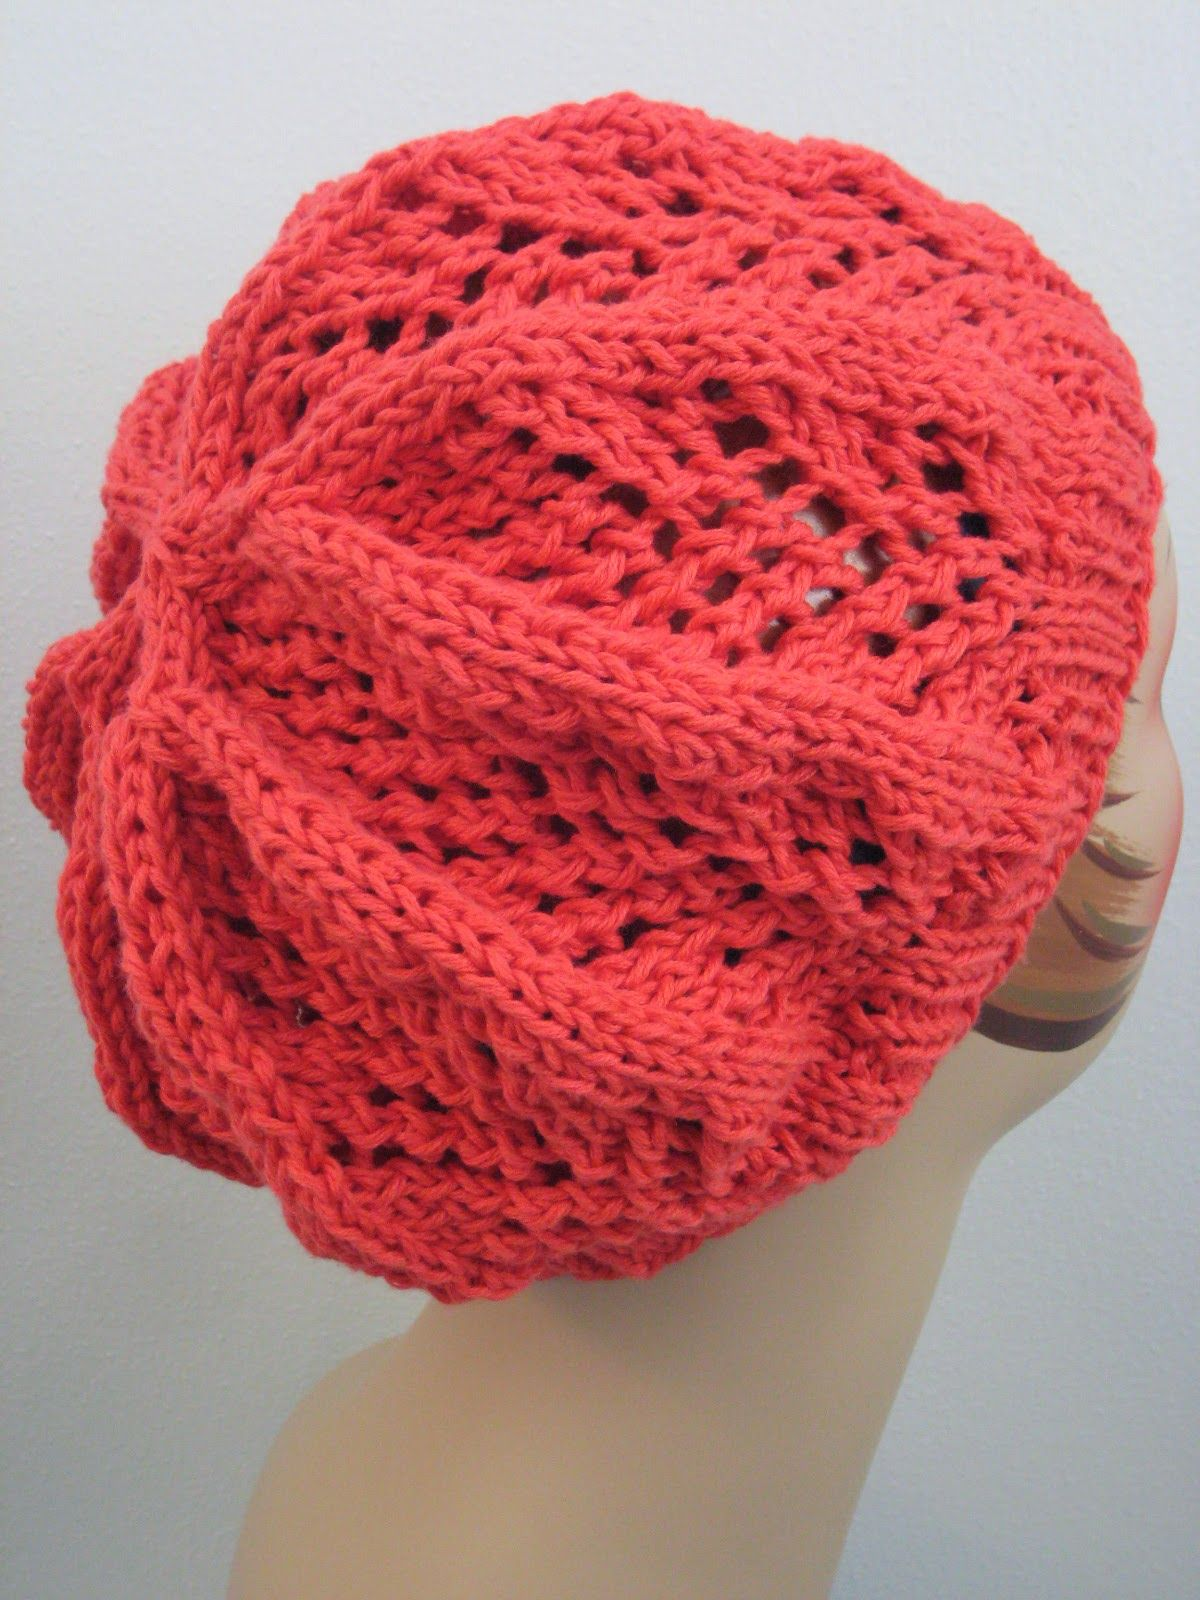 Fan Lace Hat - knit with 125 yards of worsted-weight yarn and size 8 ...